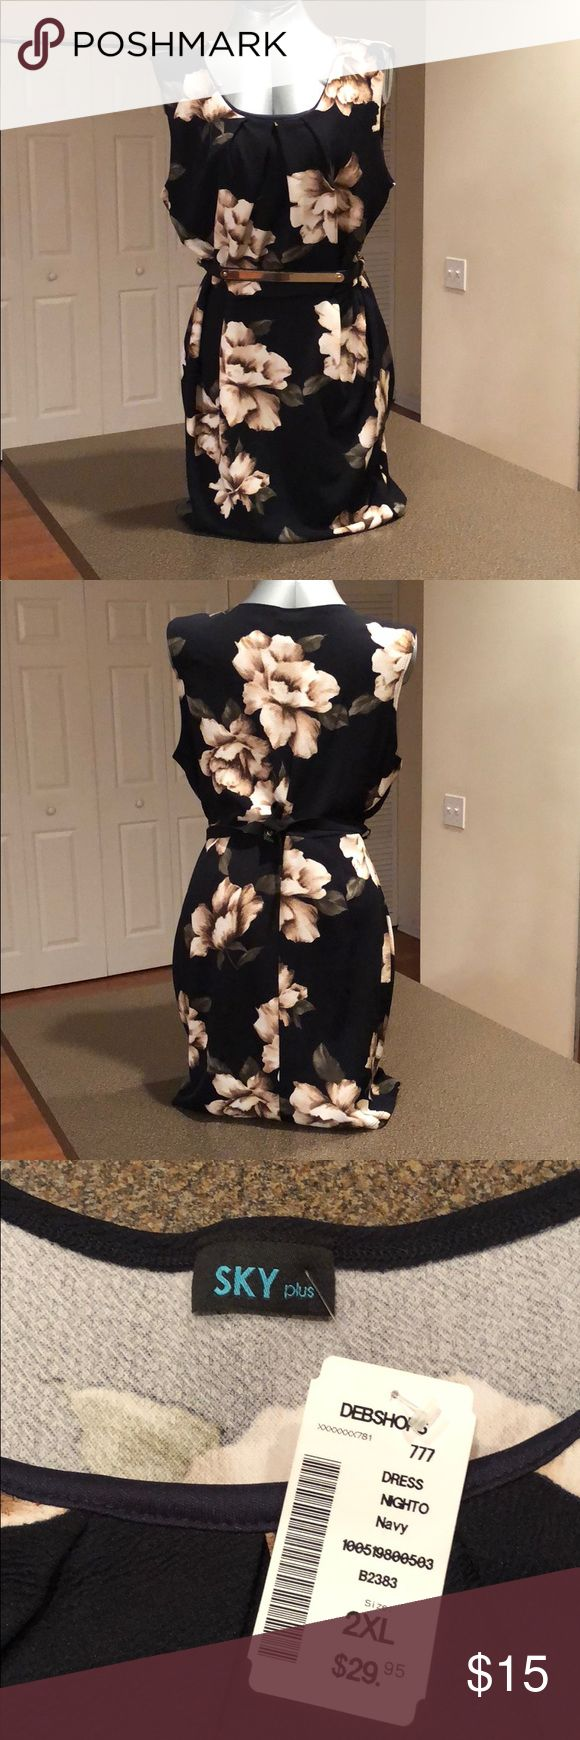 """✂️✂️ FLASH CLOSET SALE ✂️✂️ NWT Deb Shops belted sheath dress. Navy blue with brown and cream floral floral print. Belt snap closure, 41 1/2"""" flat, more than 60"""" stretched. Bust 20""""/25"""", waist 19""""/24"""". Length 35 1/2"""". Deb Dresses Mini"""